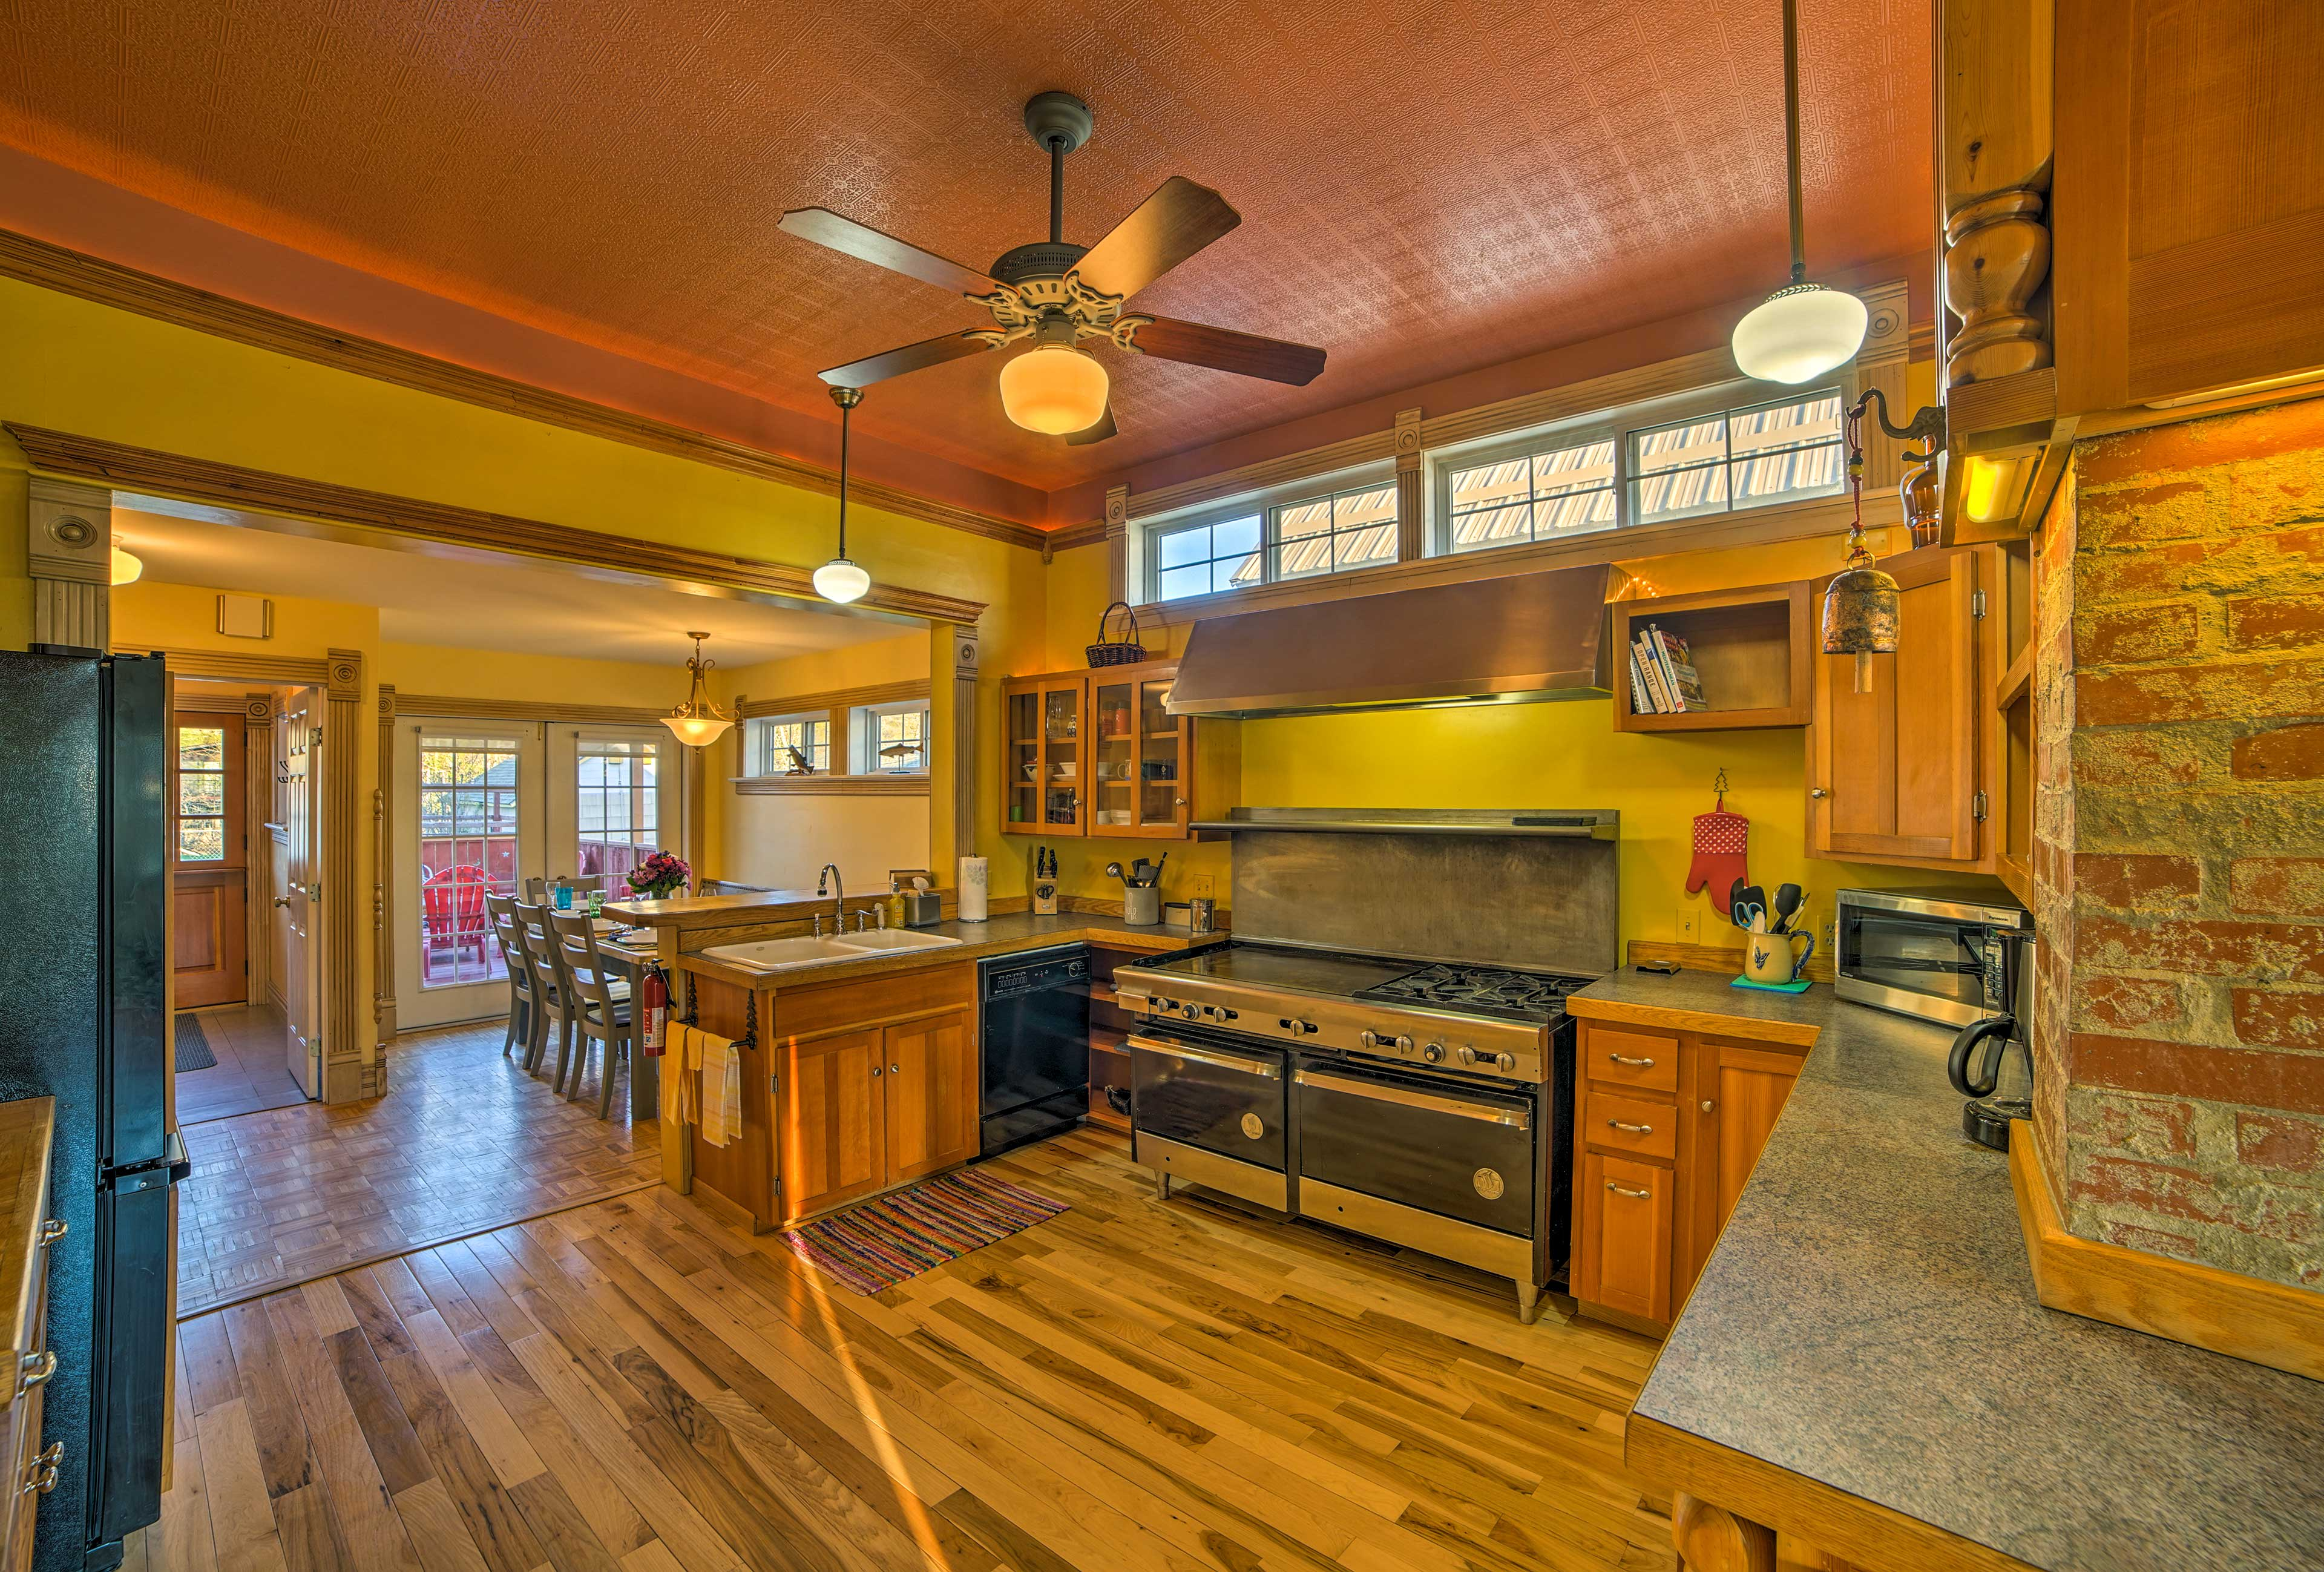 Custom wood flooring complements this stunning kitchen.